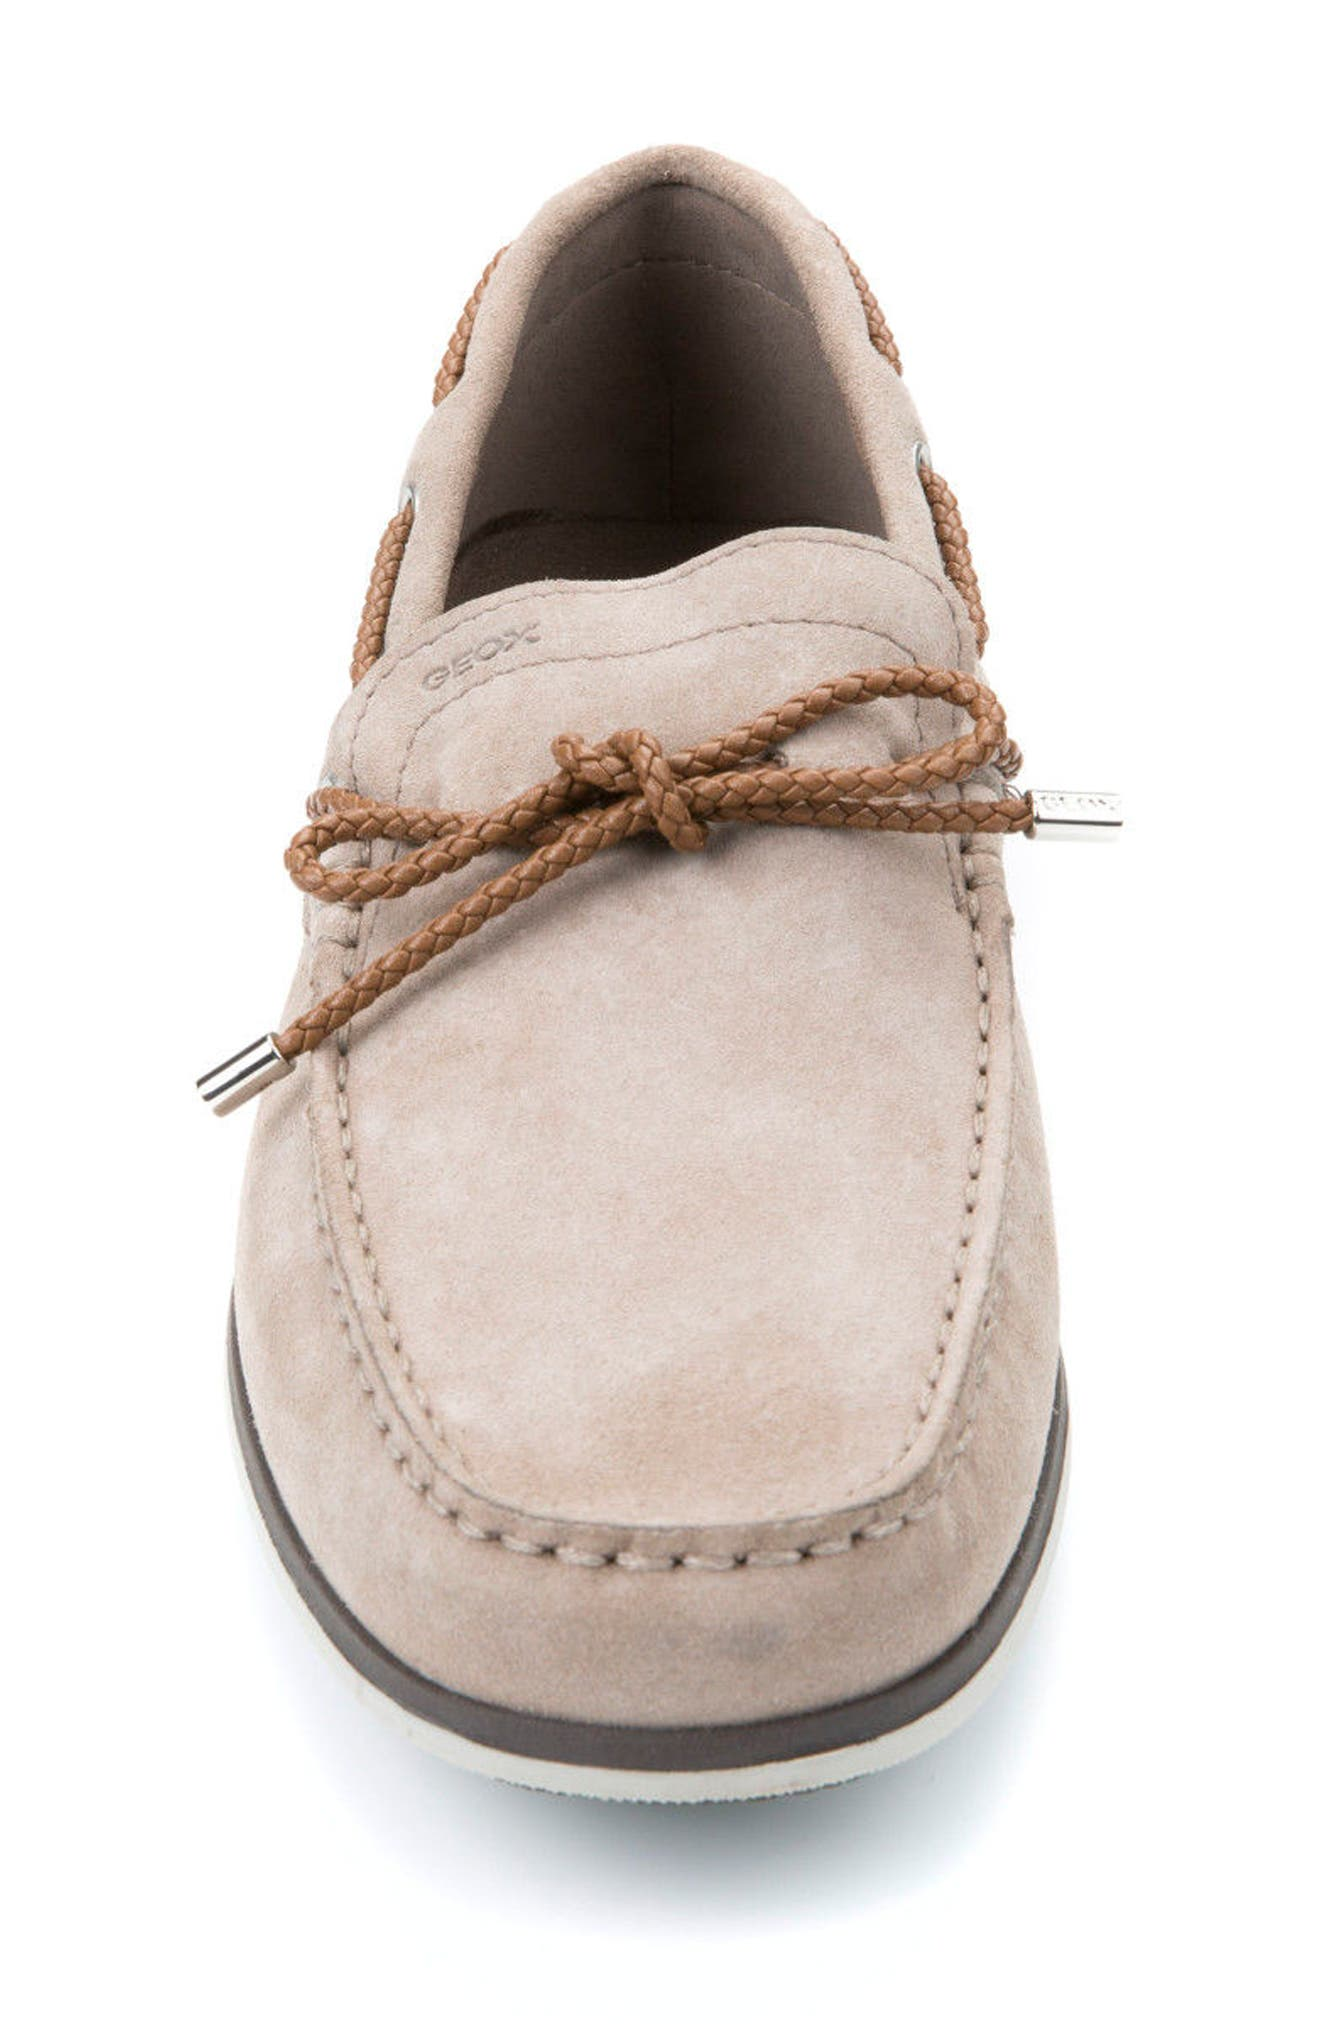 Mirvin 2 Boat Shoe,                             Alternate thumbnail 4, color,                             Taupe Suede